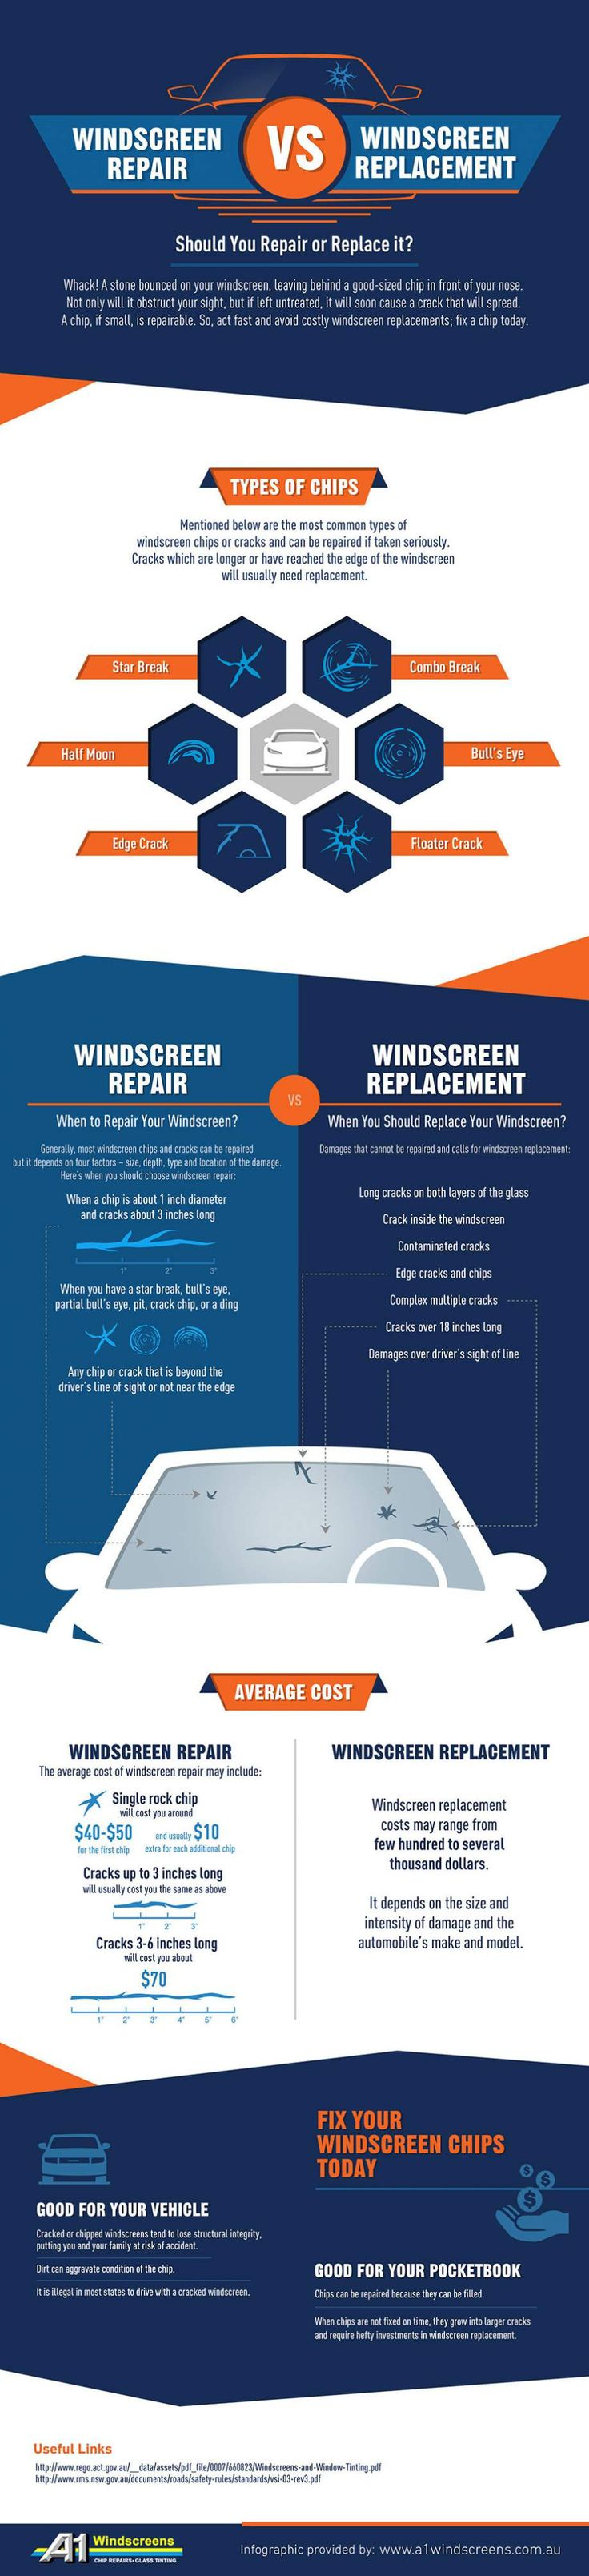 When to repair a #windscreen and when to replace one.